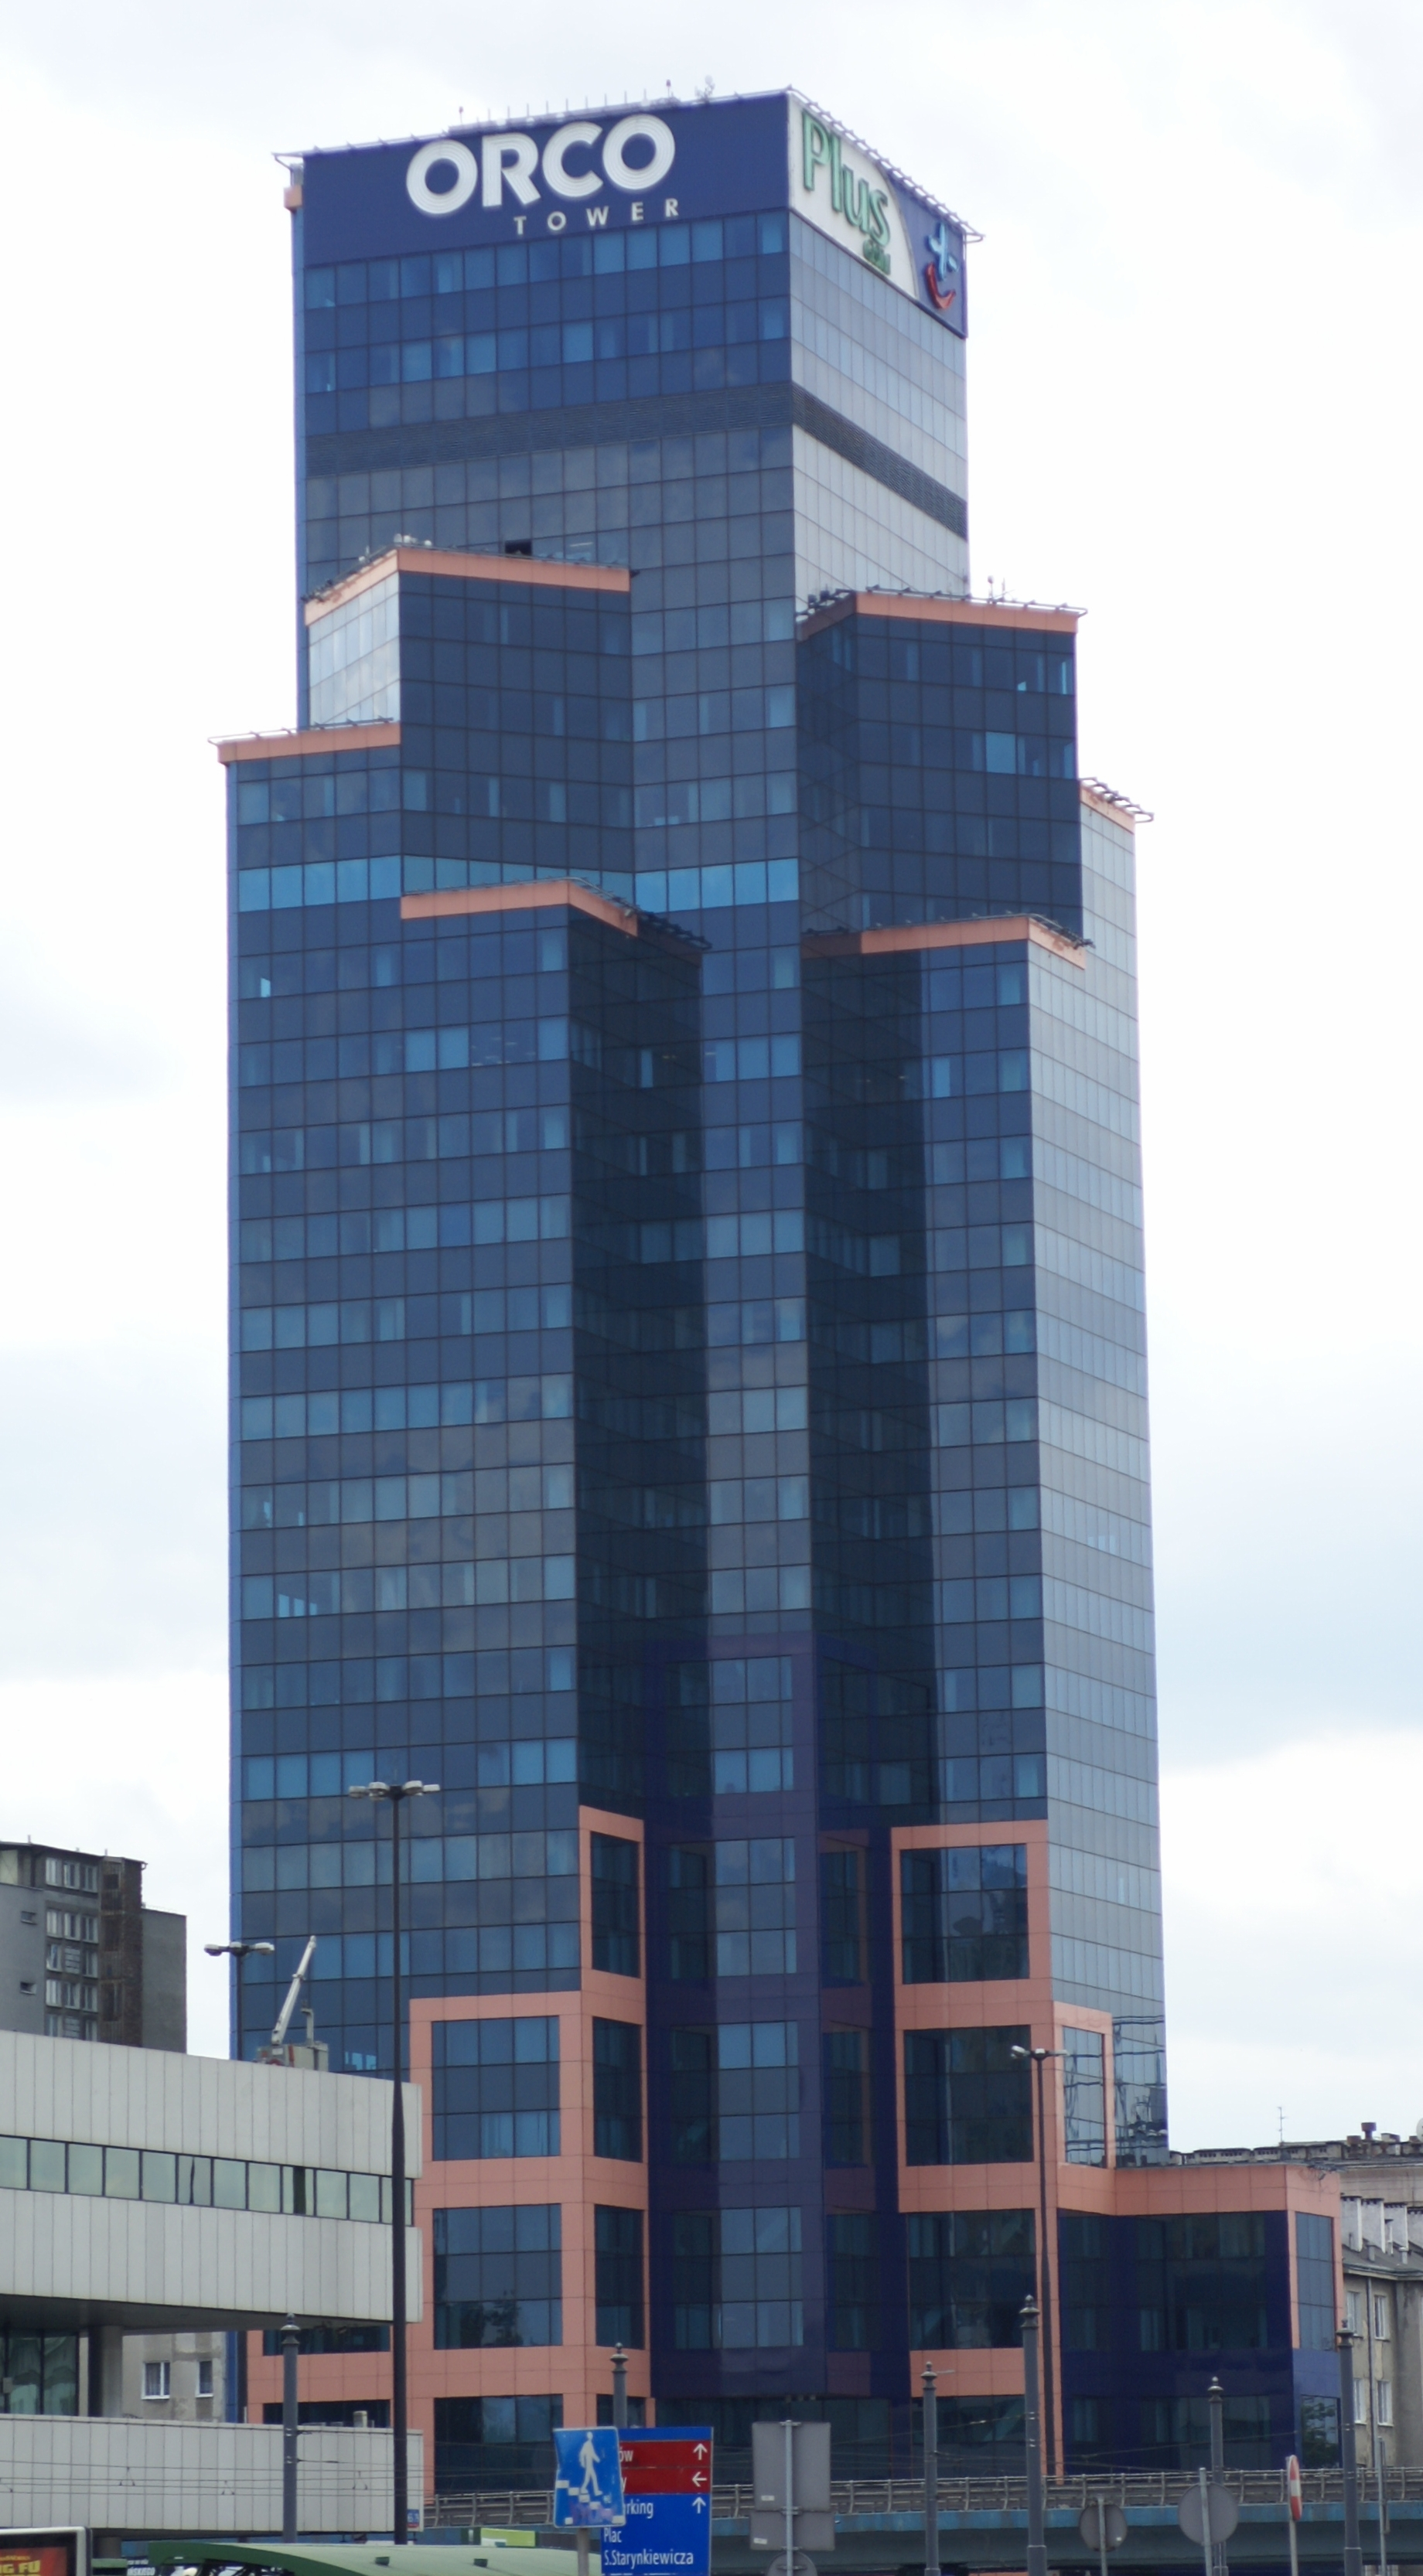 http://upload.wikimedia.org/wikipedia/commons/3/3f/Orco_tower_warsaw_1.jpg